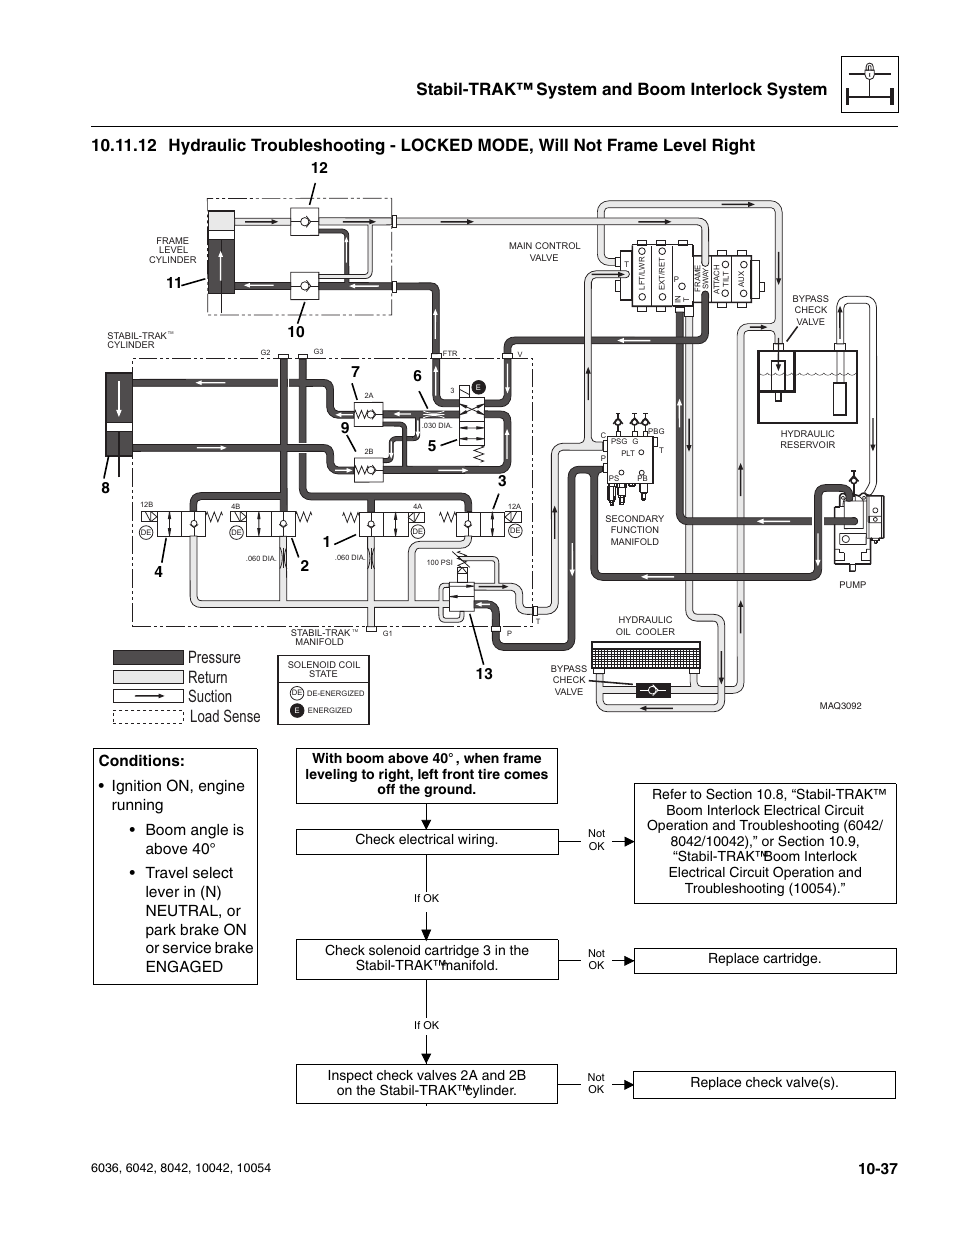 Pressure suction return load sense, Check electrical wiring | SkyTrak 6036  Service Manual User Manual | Page 265 / 276Manuals Directory